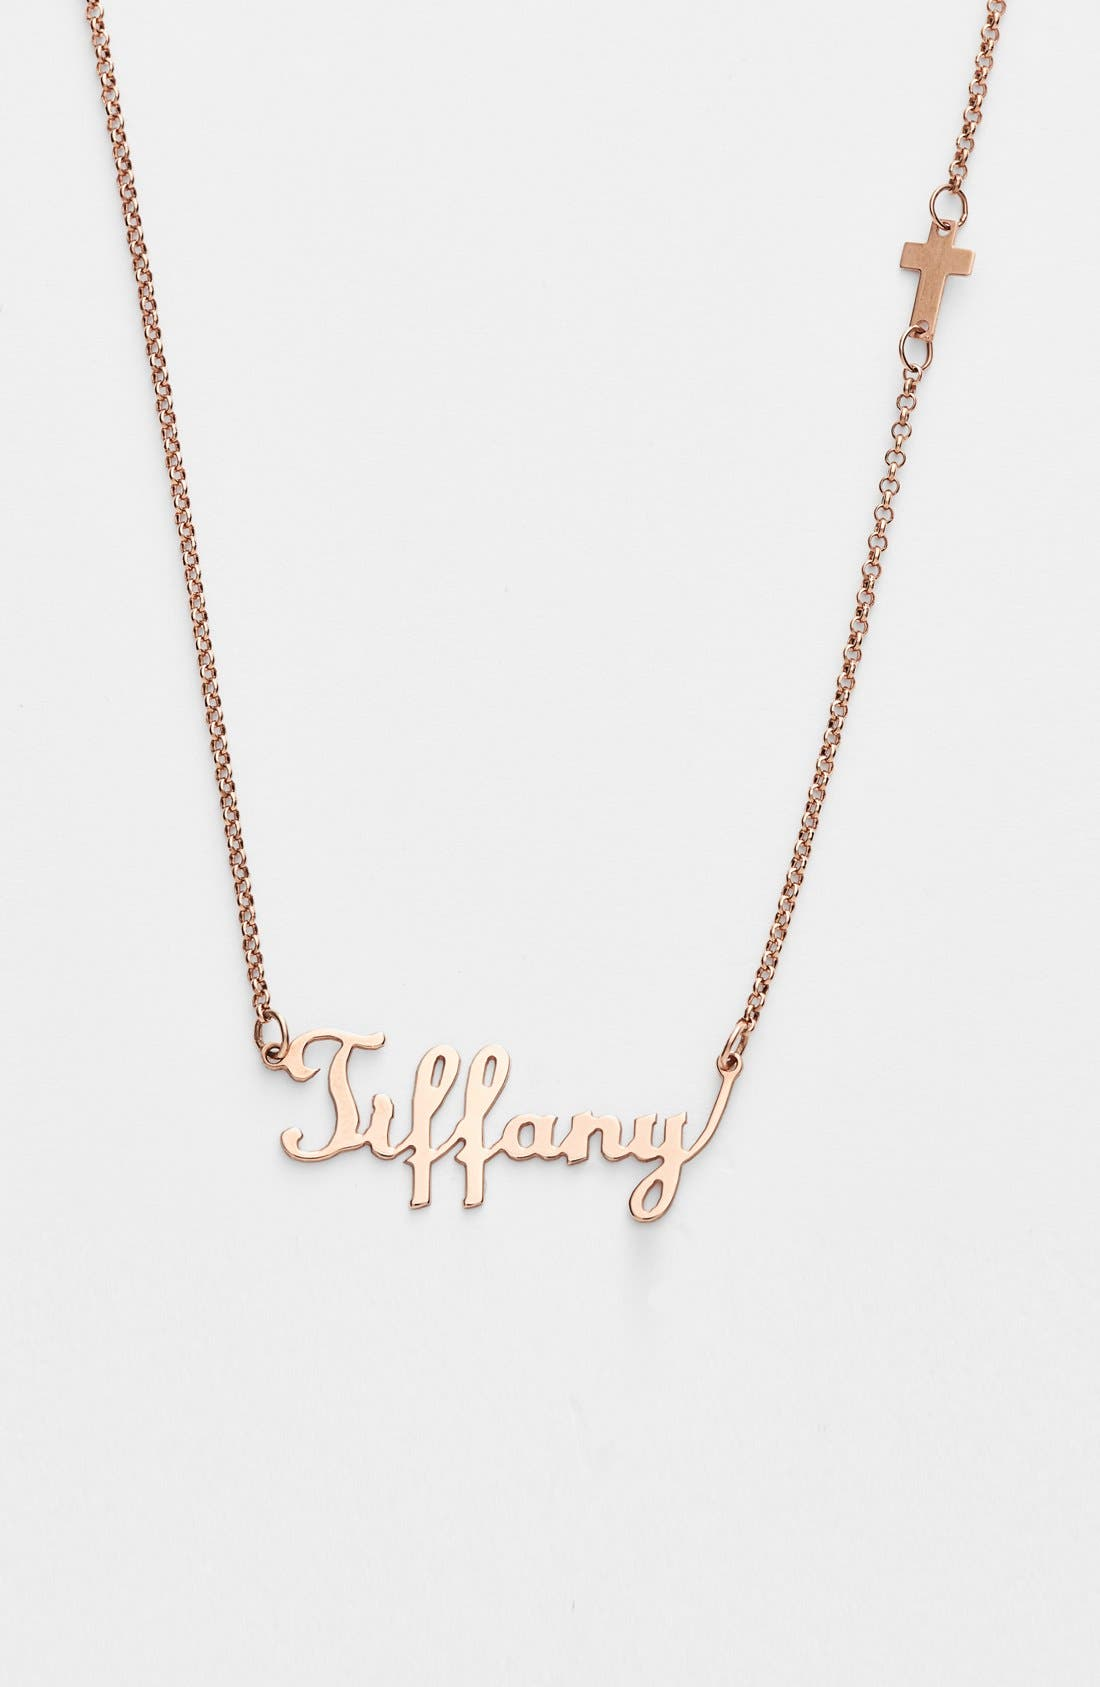 Personalized Script Name with Cross Necklace,                             Main thumbnail 1, color,                             Rose Gold